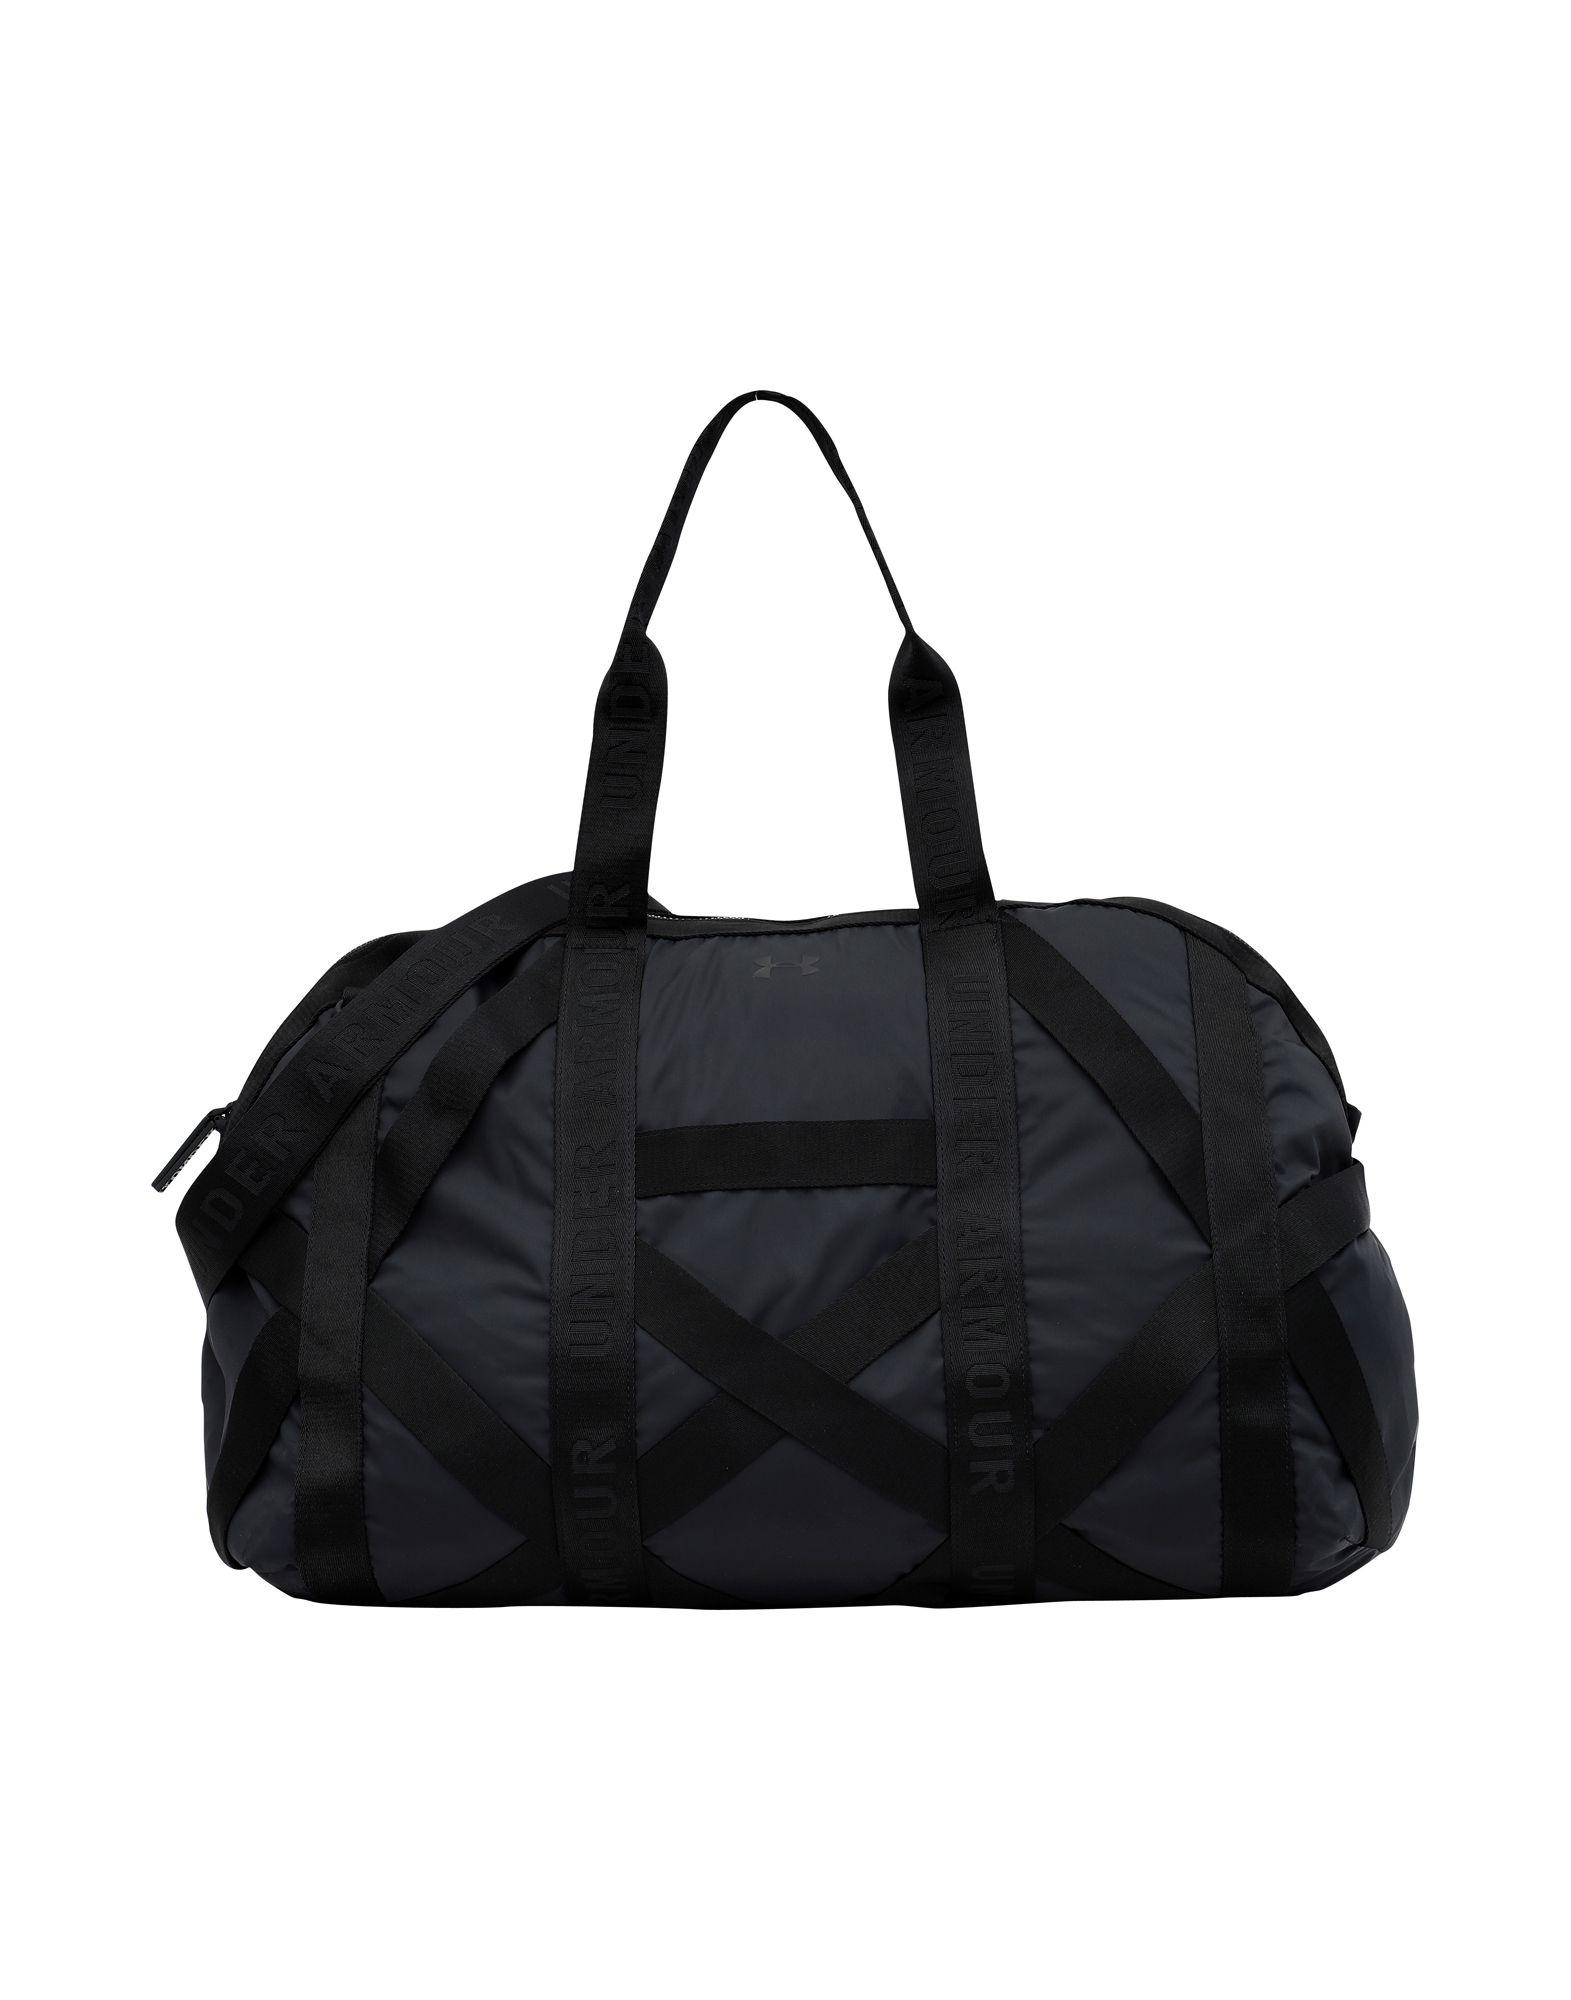 Under Armour Luggage in Black - Lyst ed79d79c66377